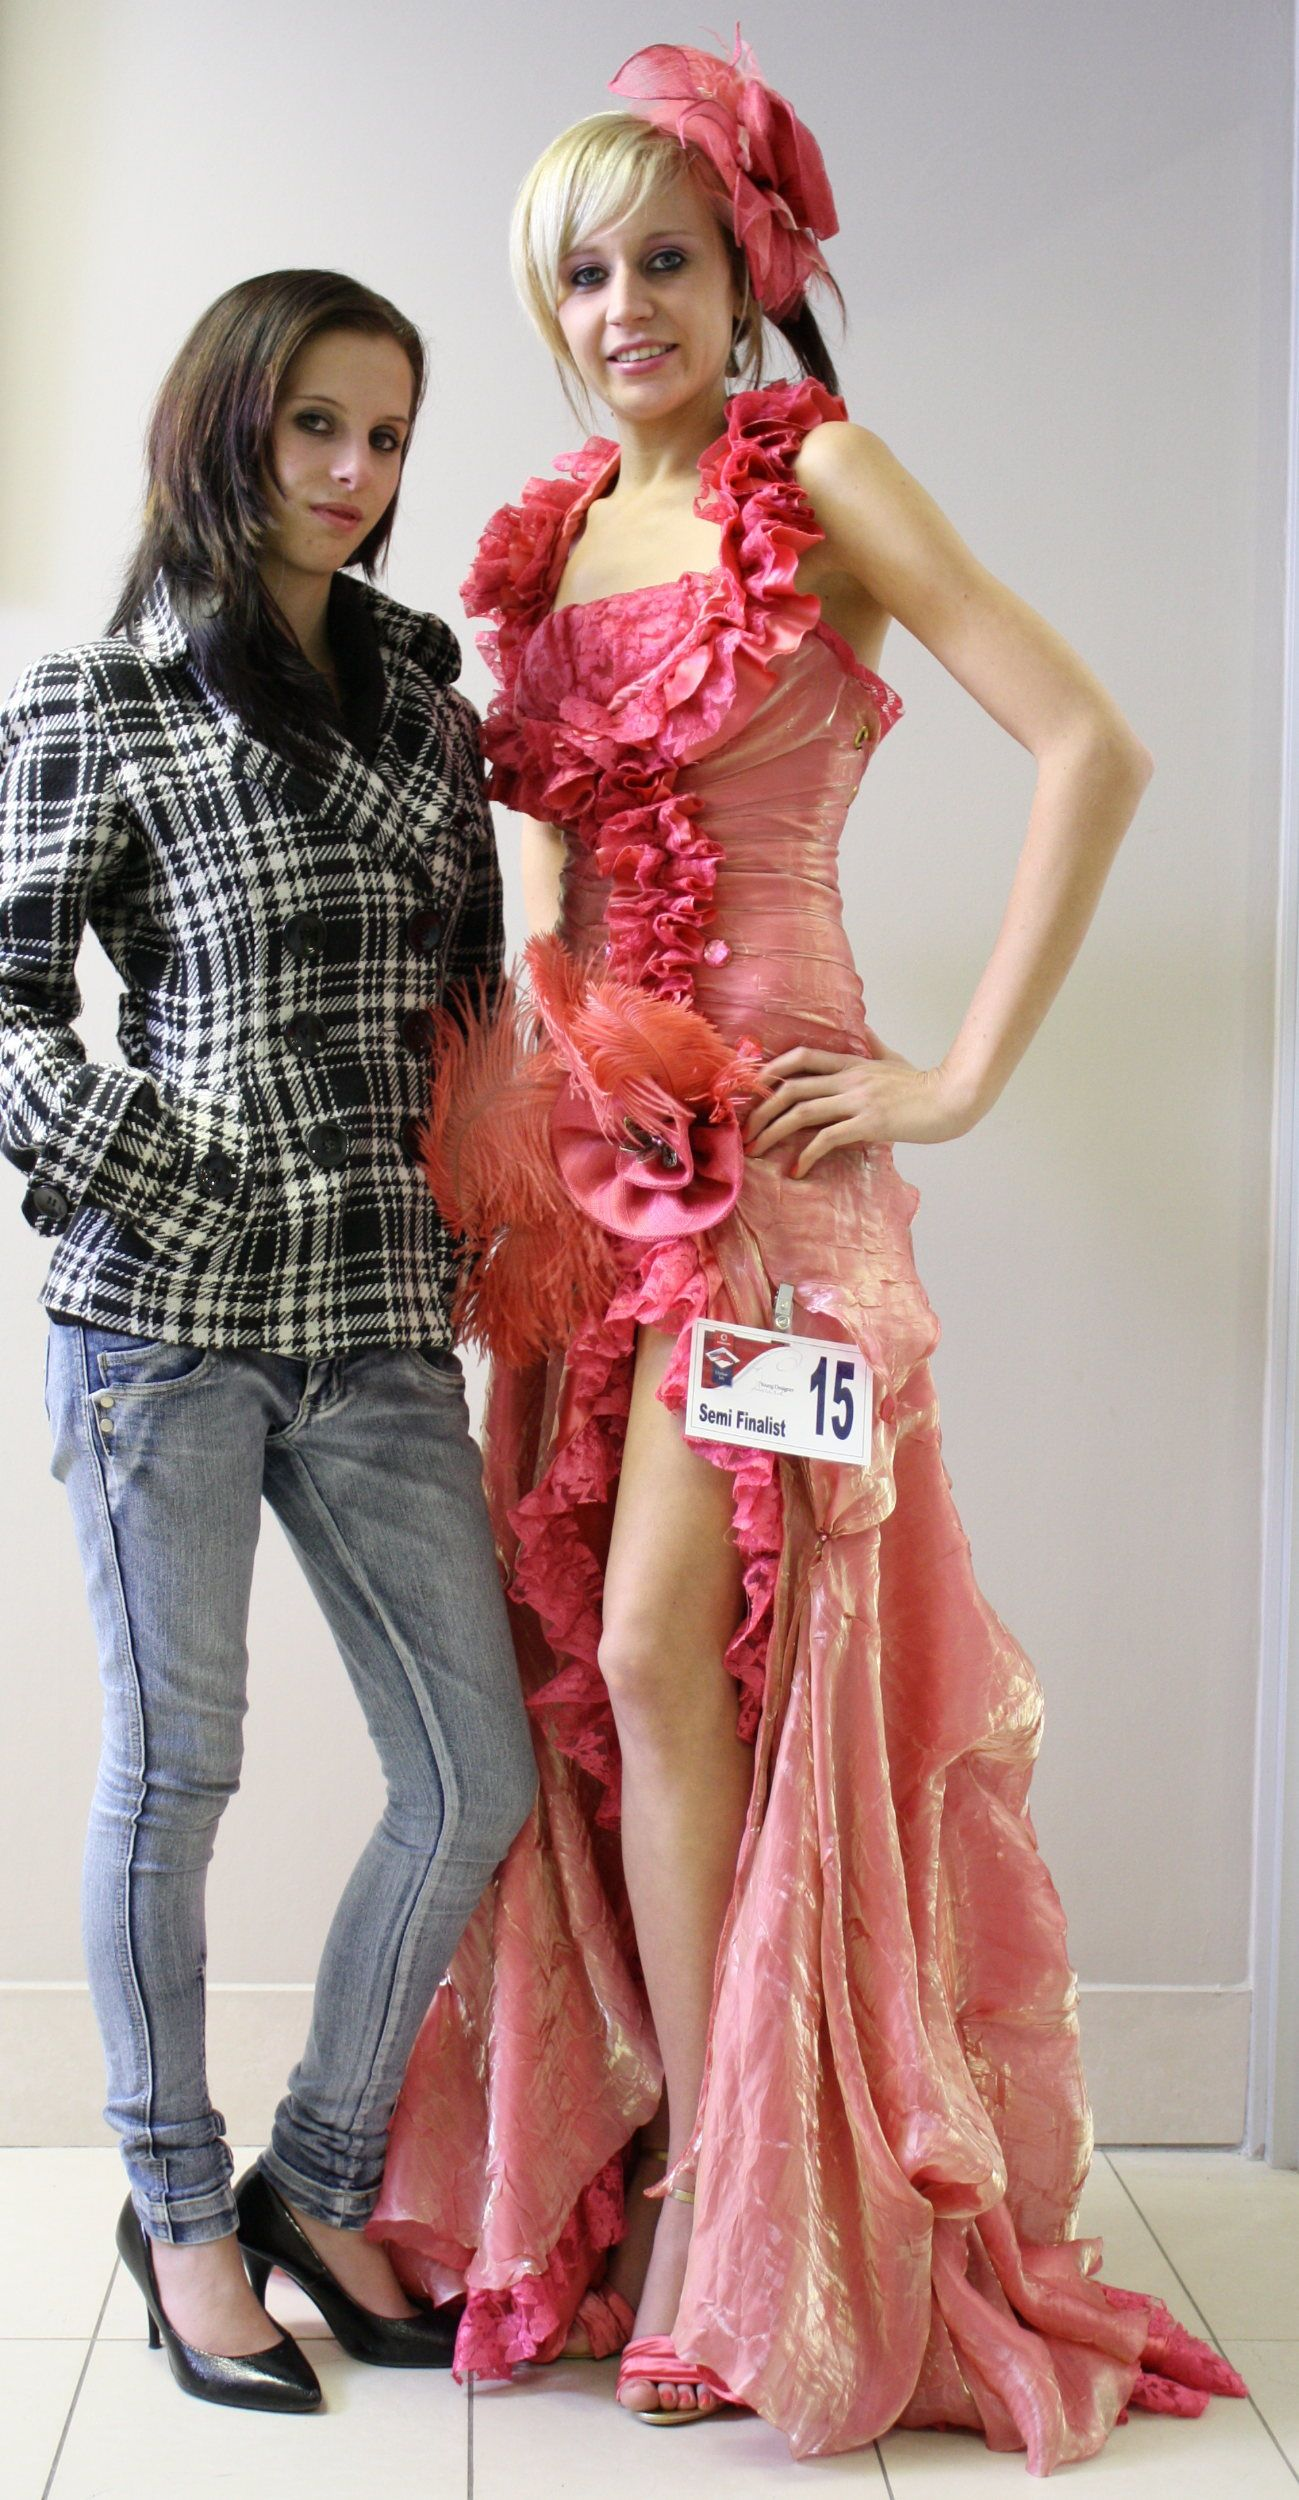 Free State Semi Finalist of the Durban July Young Designers award of 2011.